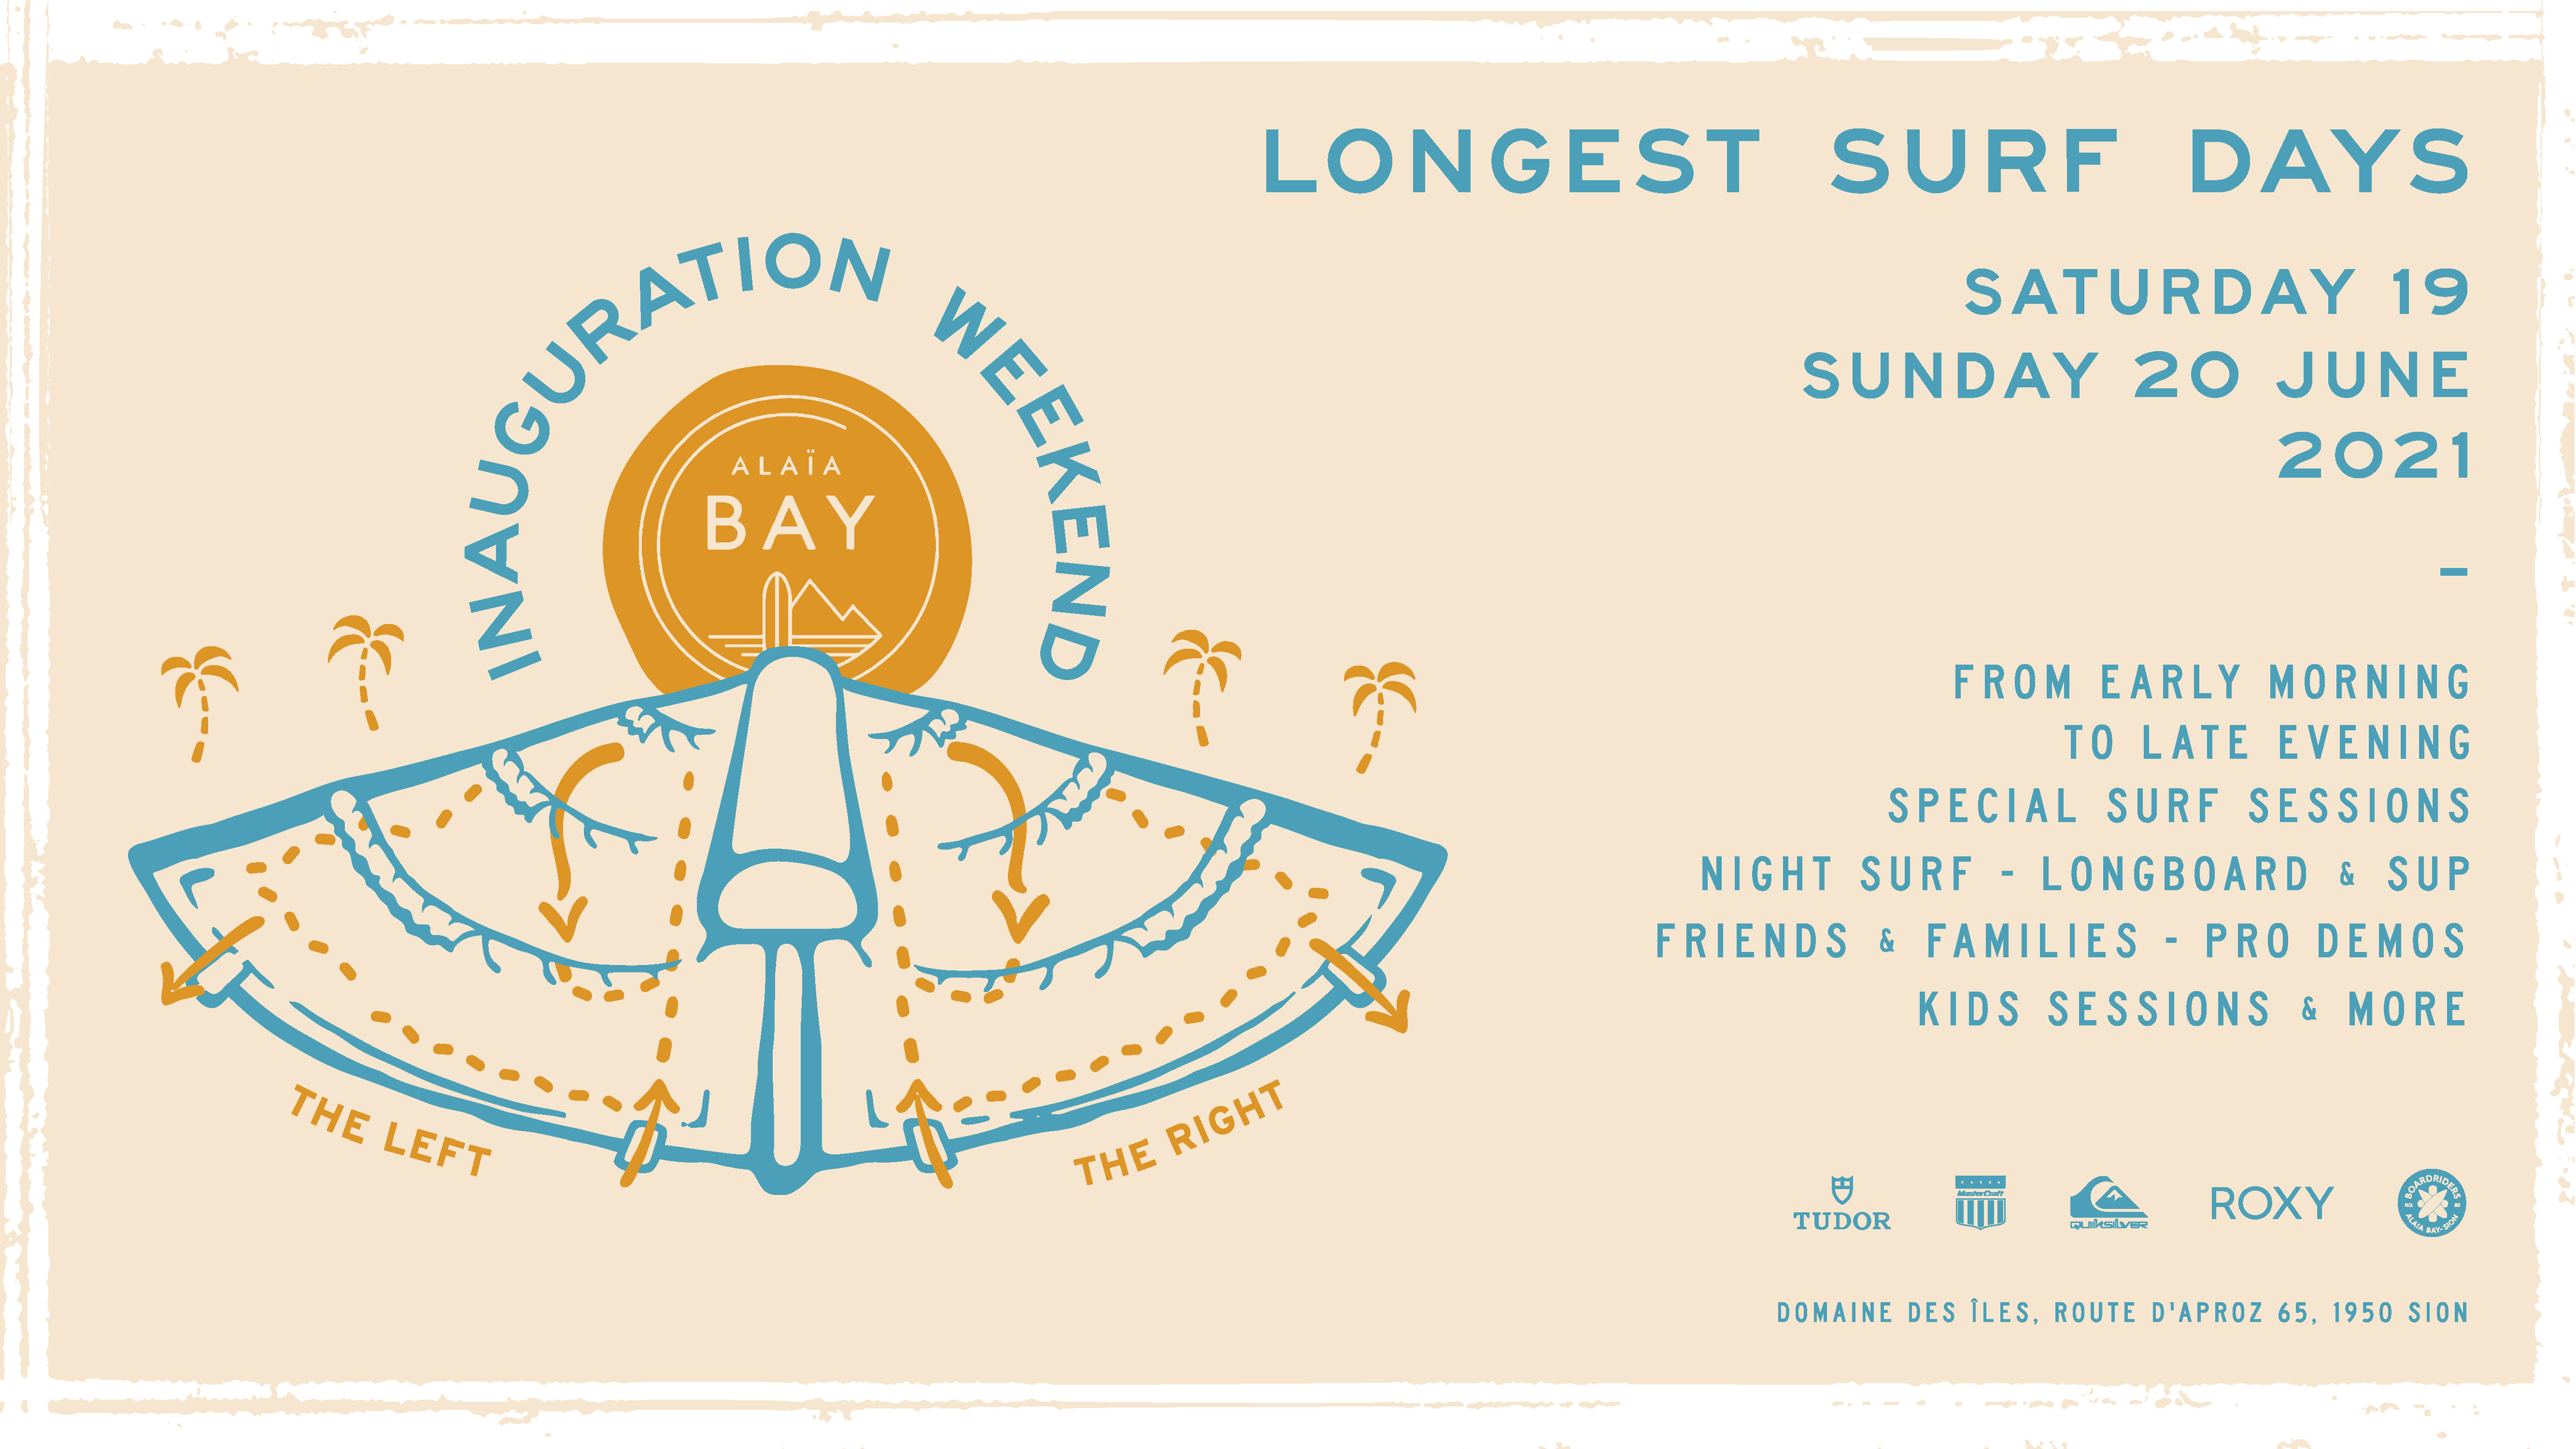 Longest surfing day alaia bay inauguration